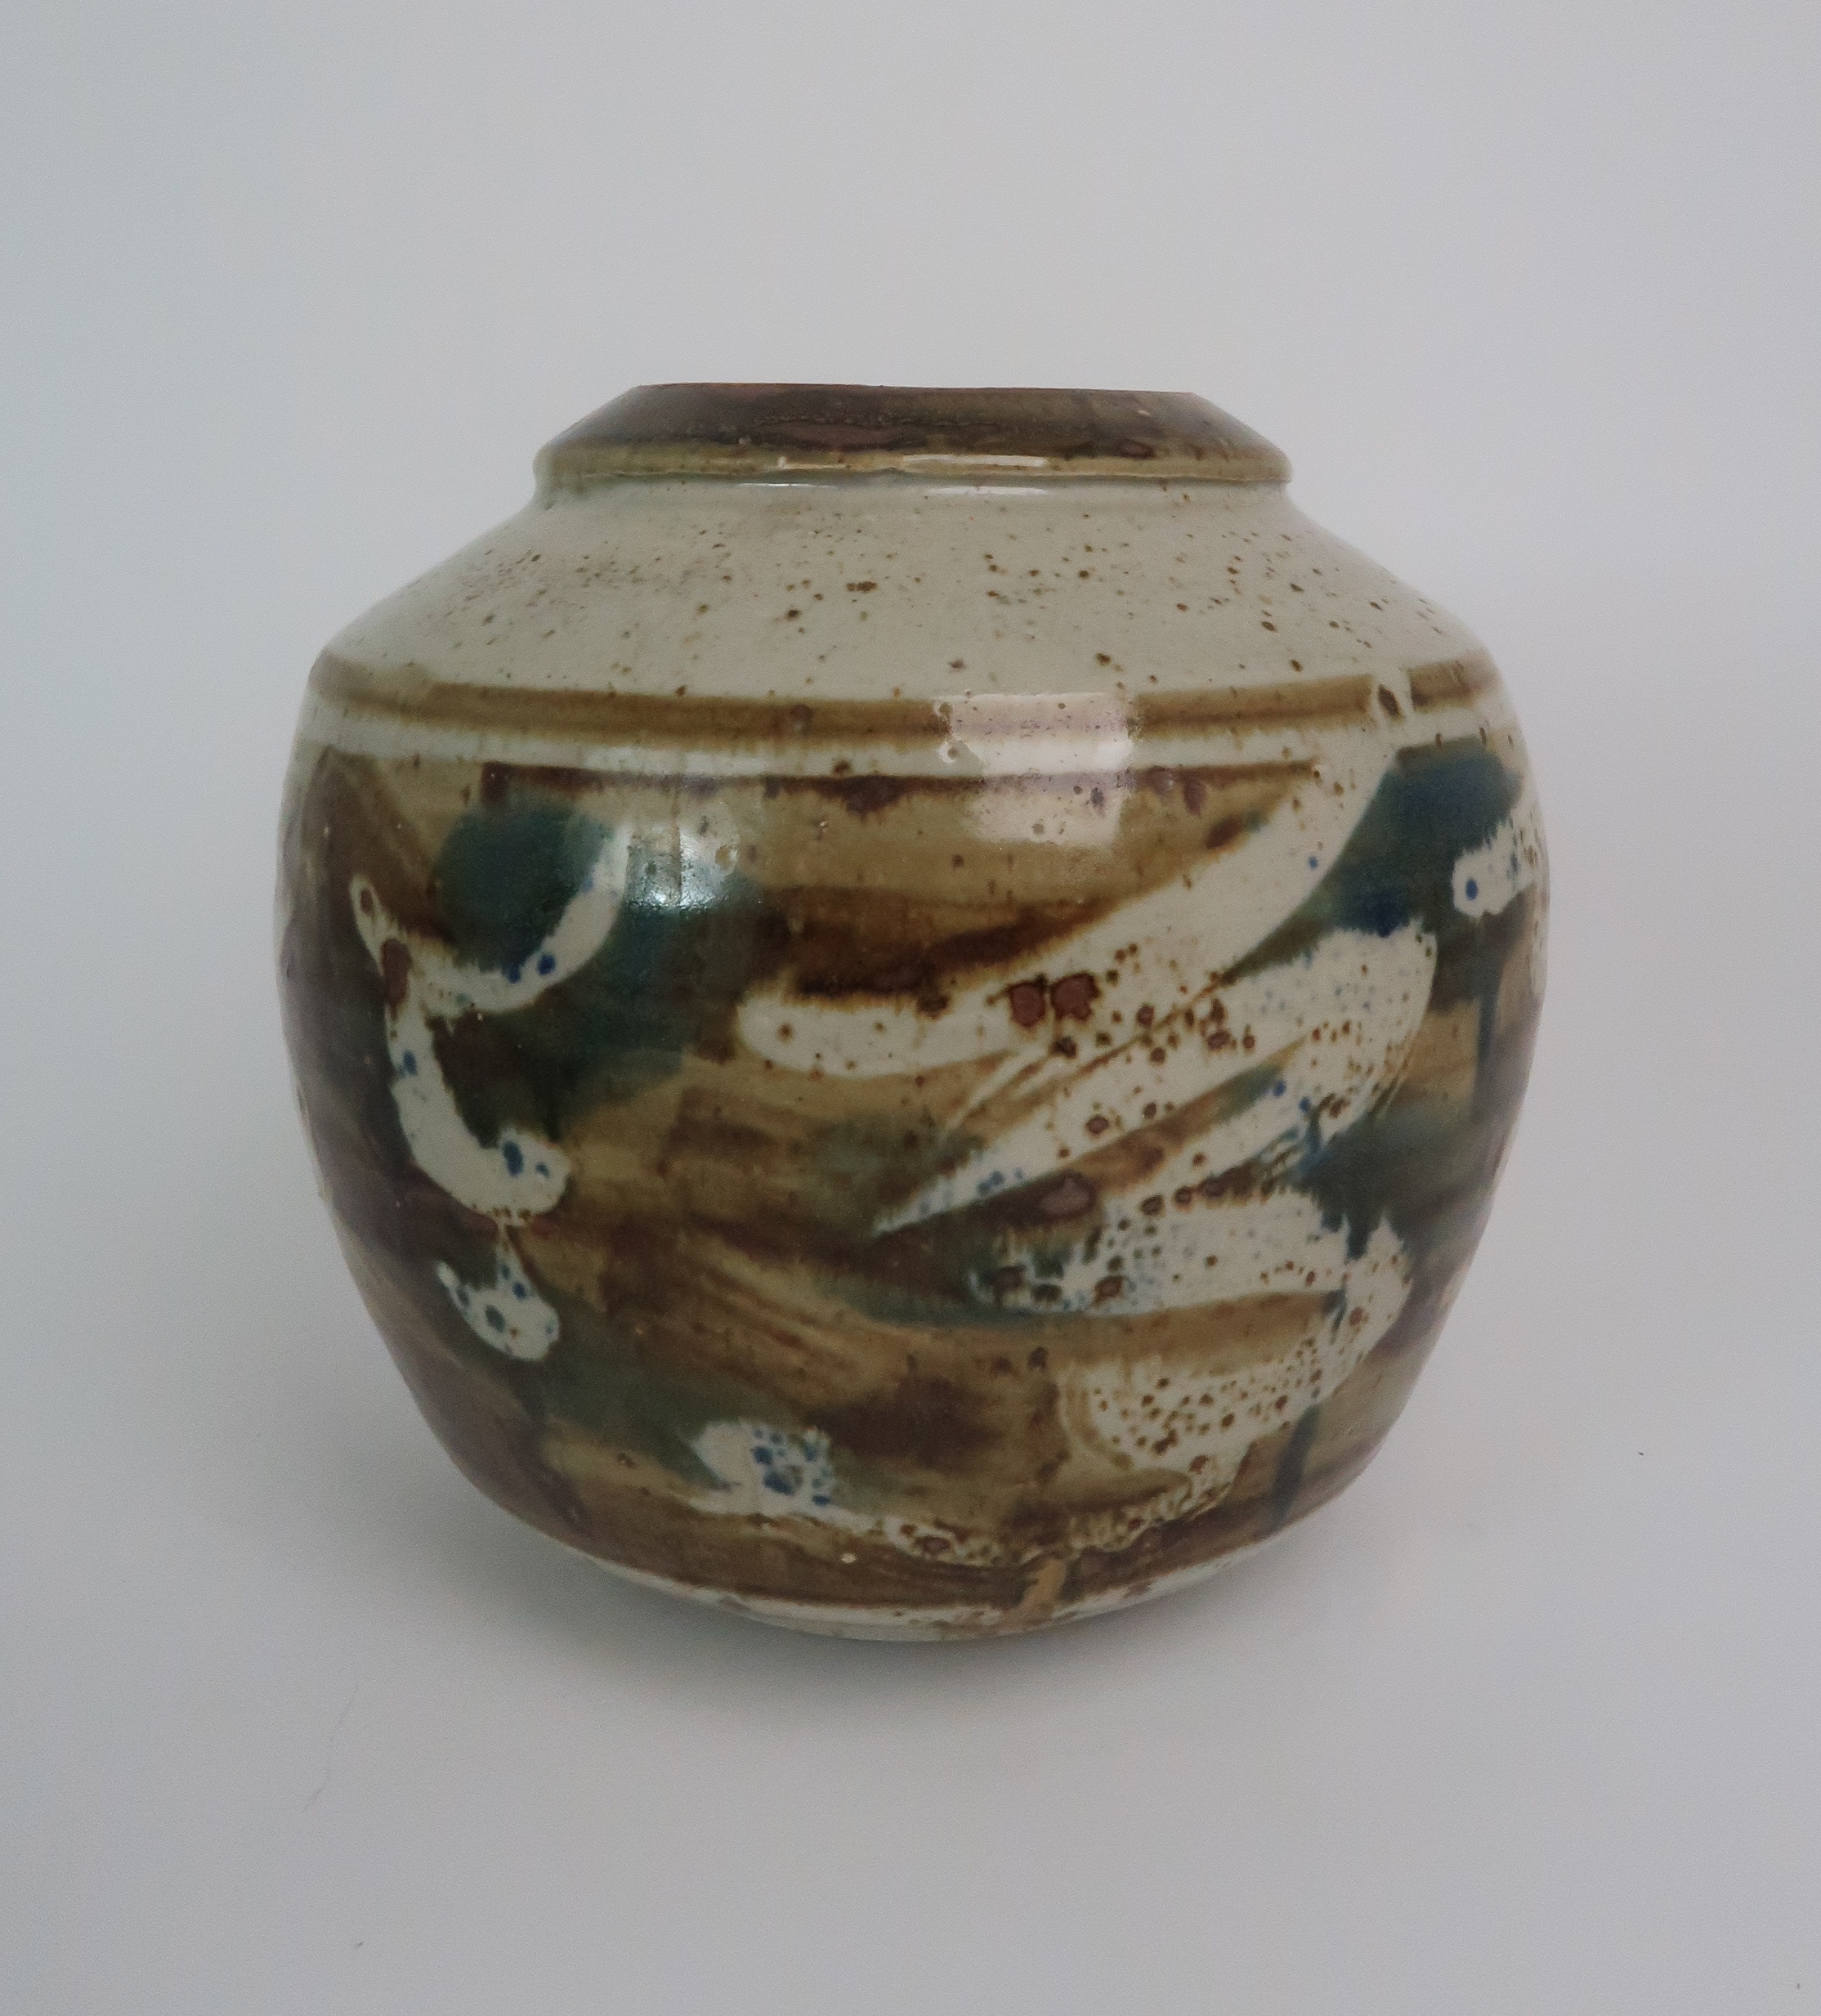 GEORGE SHANKS (1940-2000) - A COLLECTION OF STUDIO POTTERY including a glazed tall vase, 33cm - Image 8 of 15